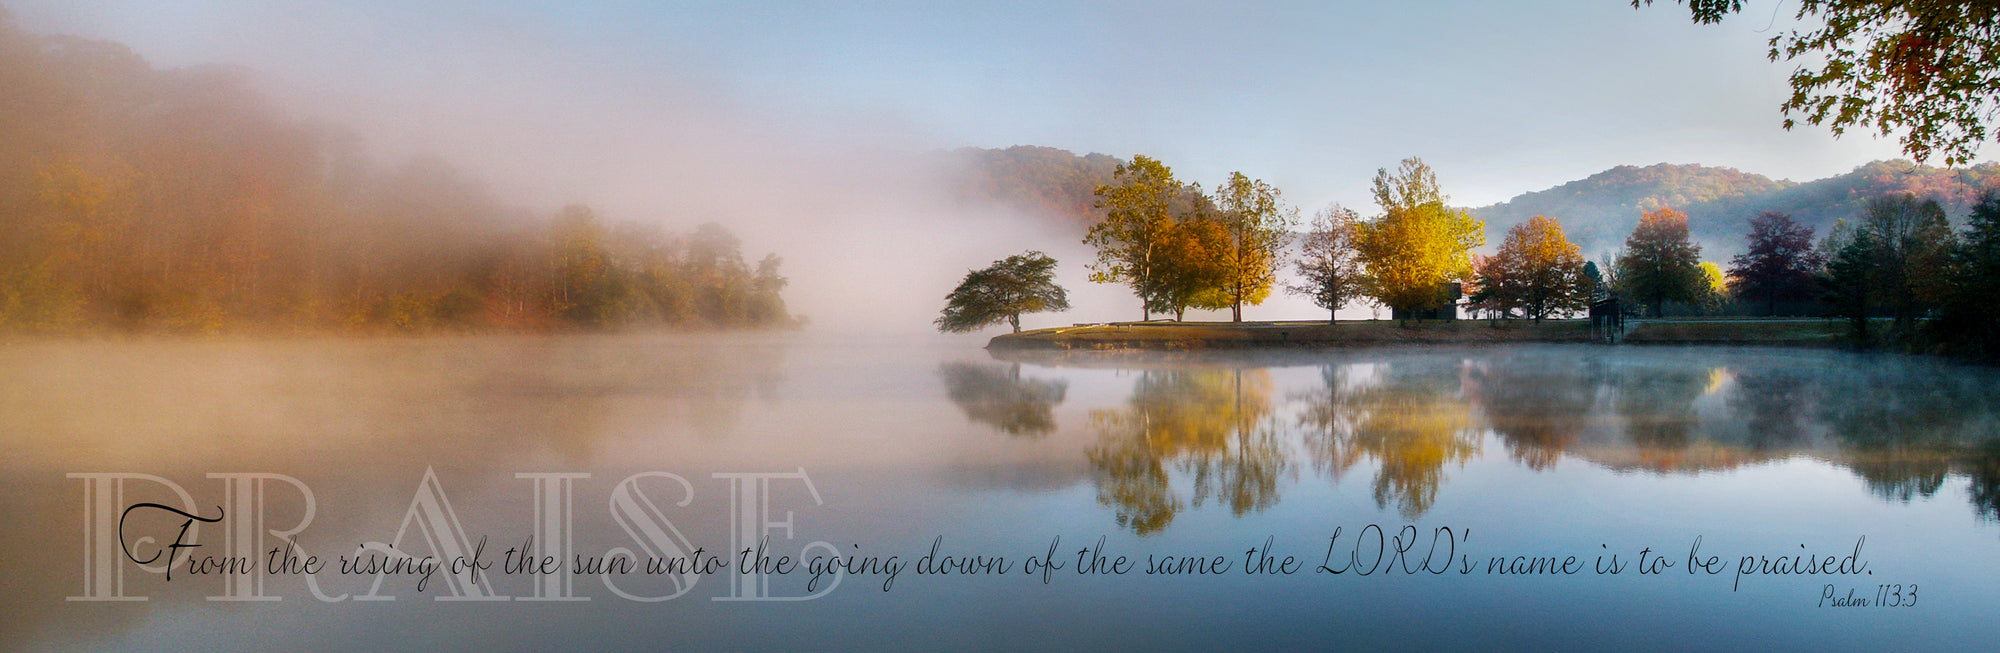 Foggy morning landscape and lake at Beech Fork State with scripture verse.